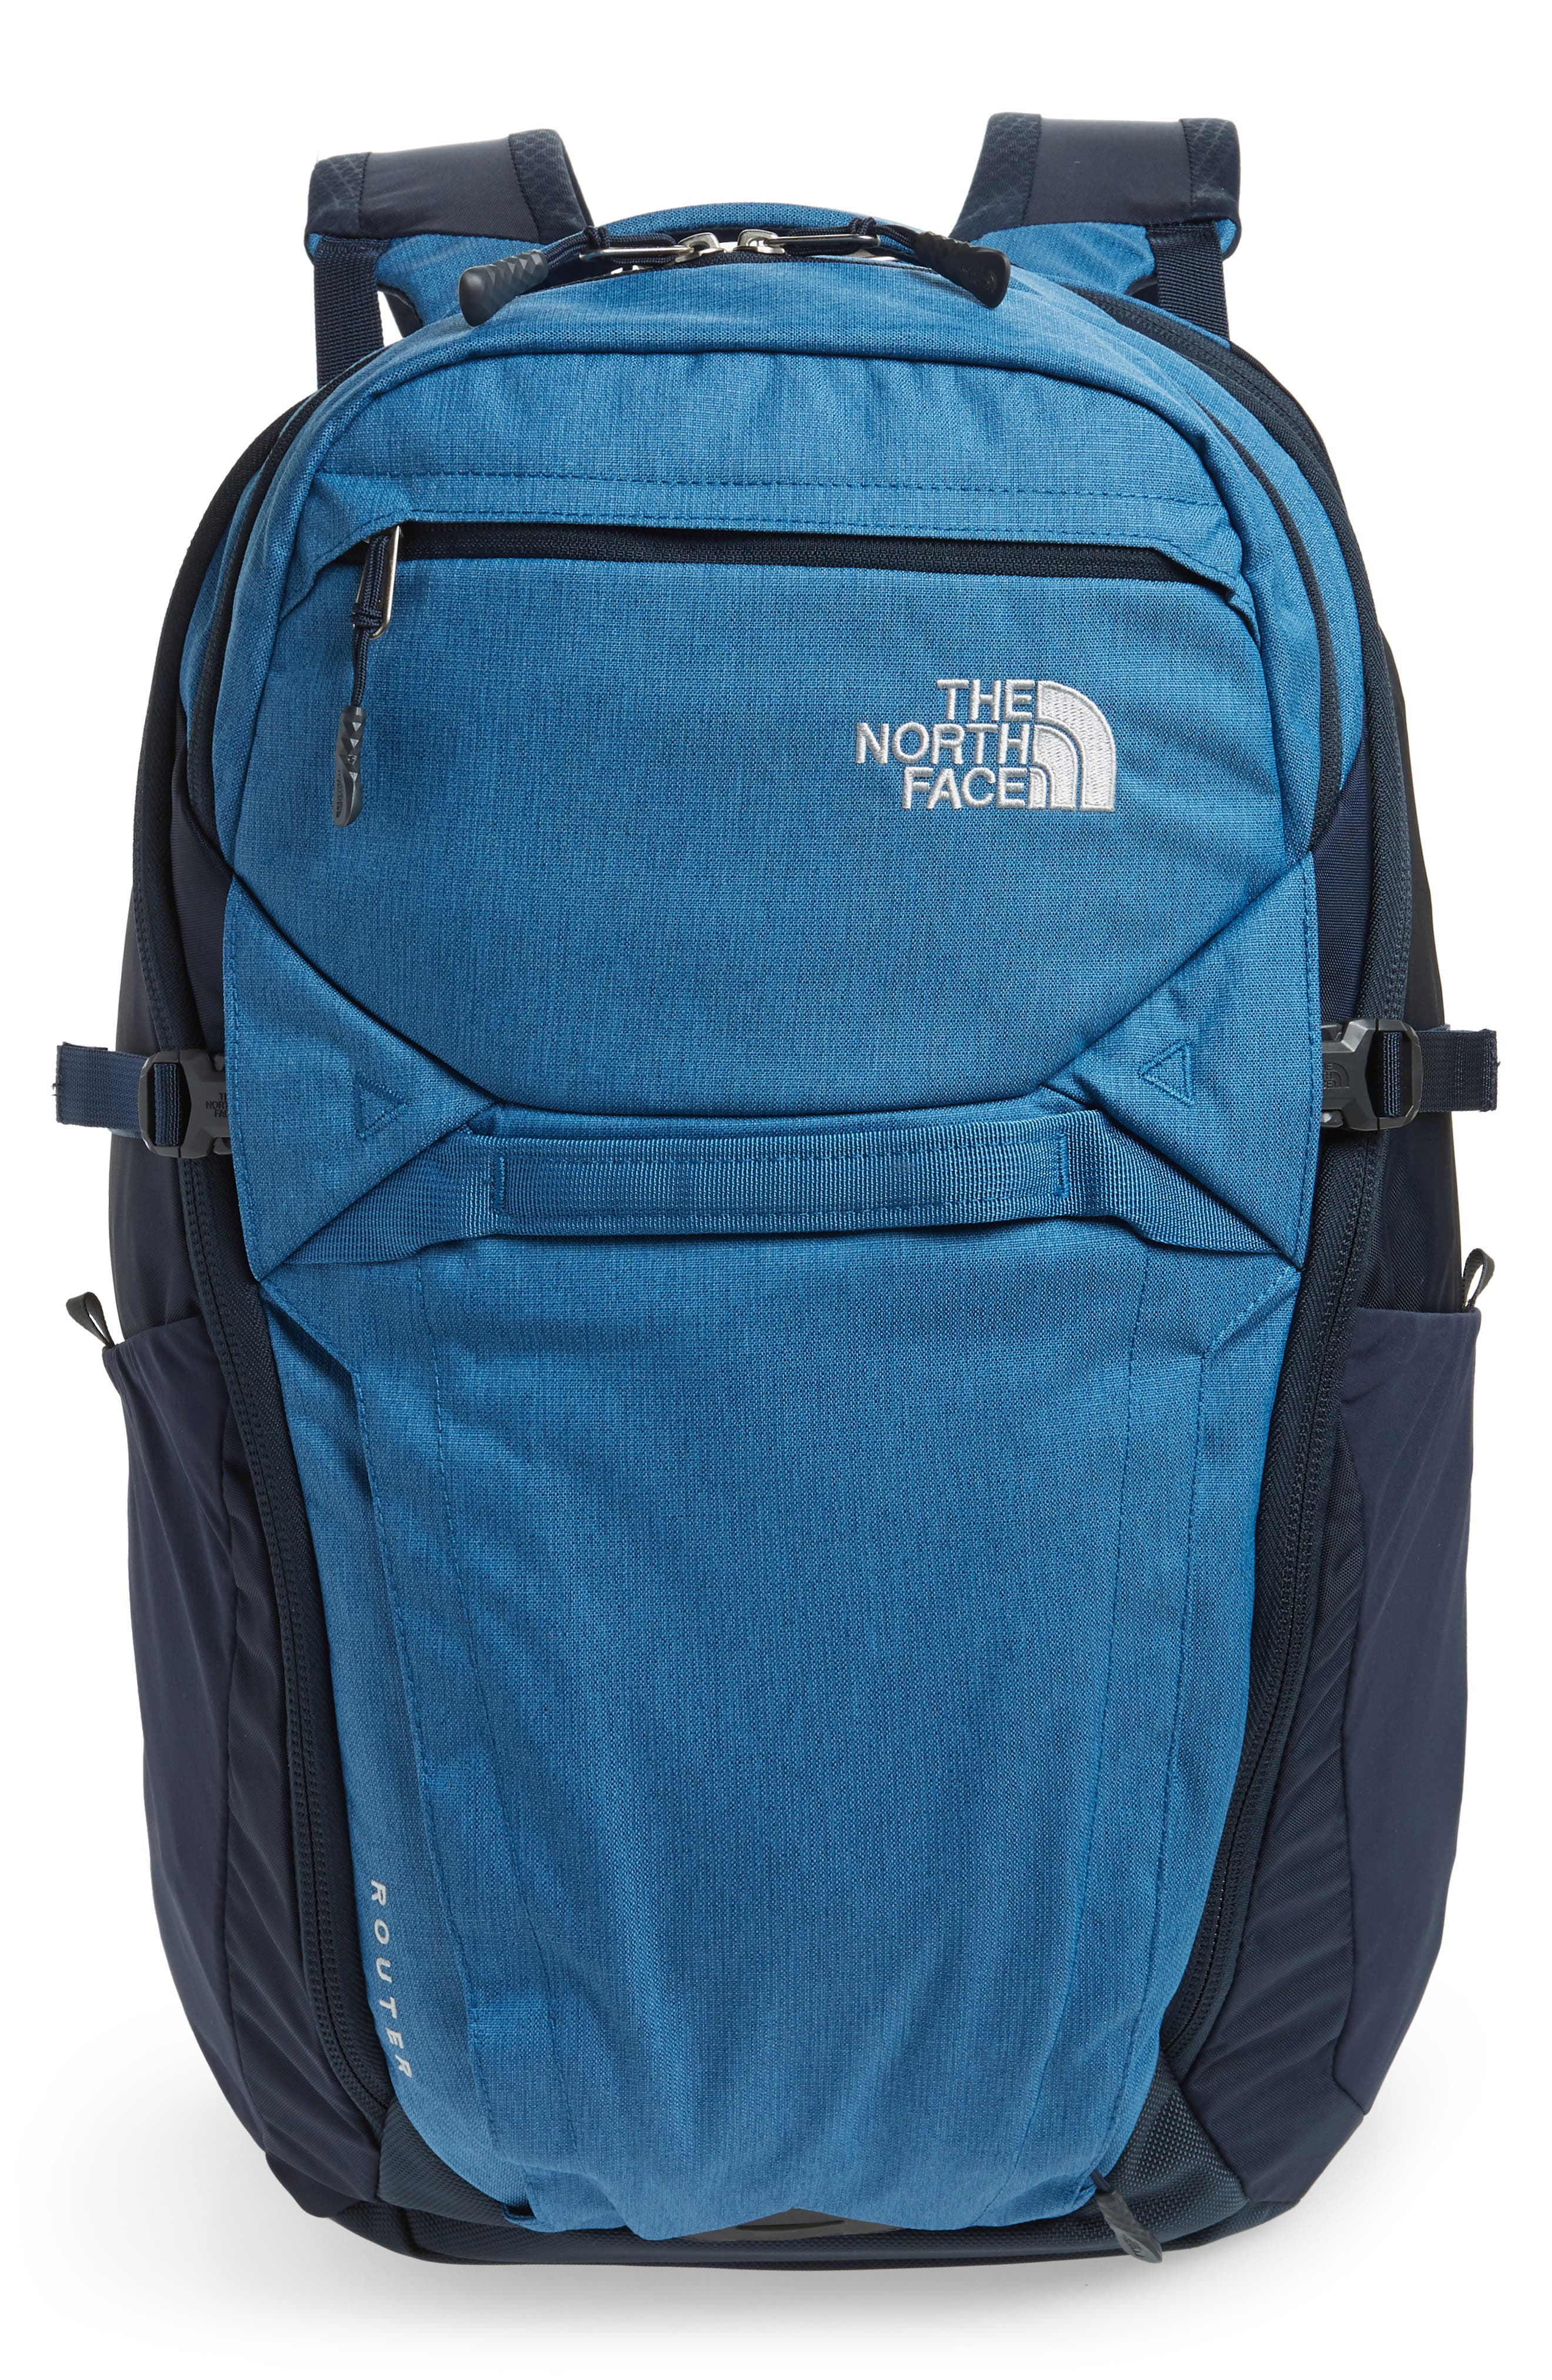 ROUTER BACKPACK - GREY